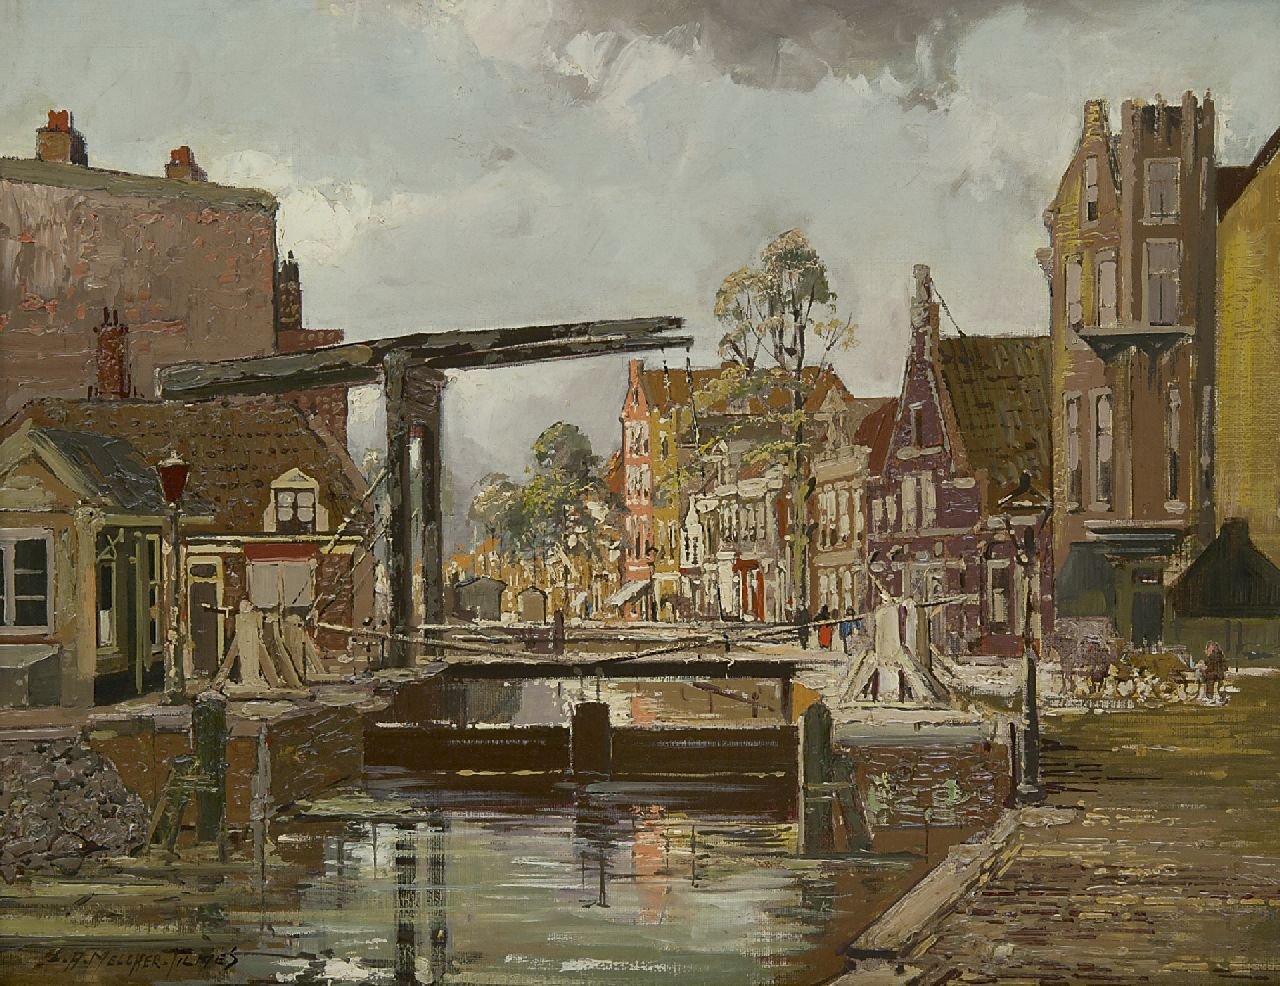 Jan Hermanus Melcher Tilmes | Drawbridge and lock at the Overtoom, Amsterdam, oil on canvas, 35.2 x 44.7 cm, signed l.l.